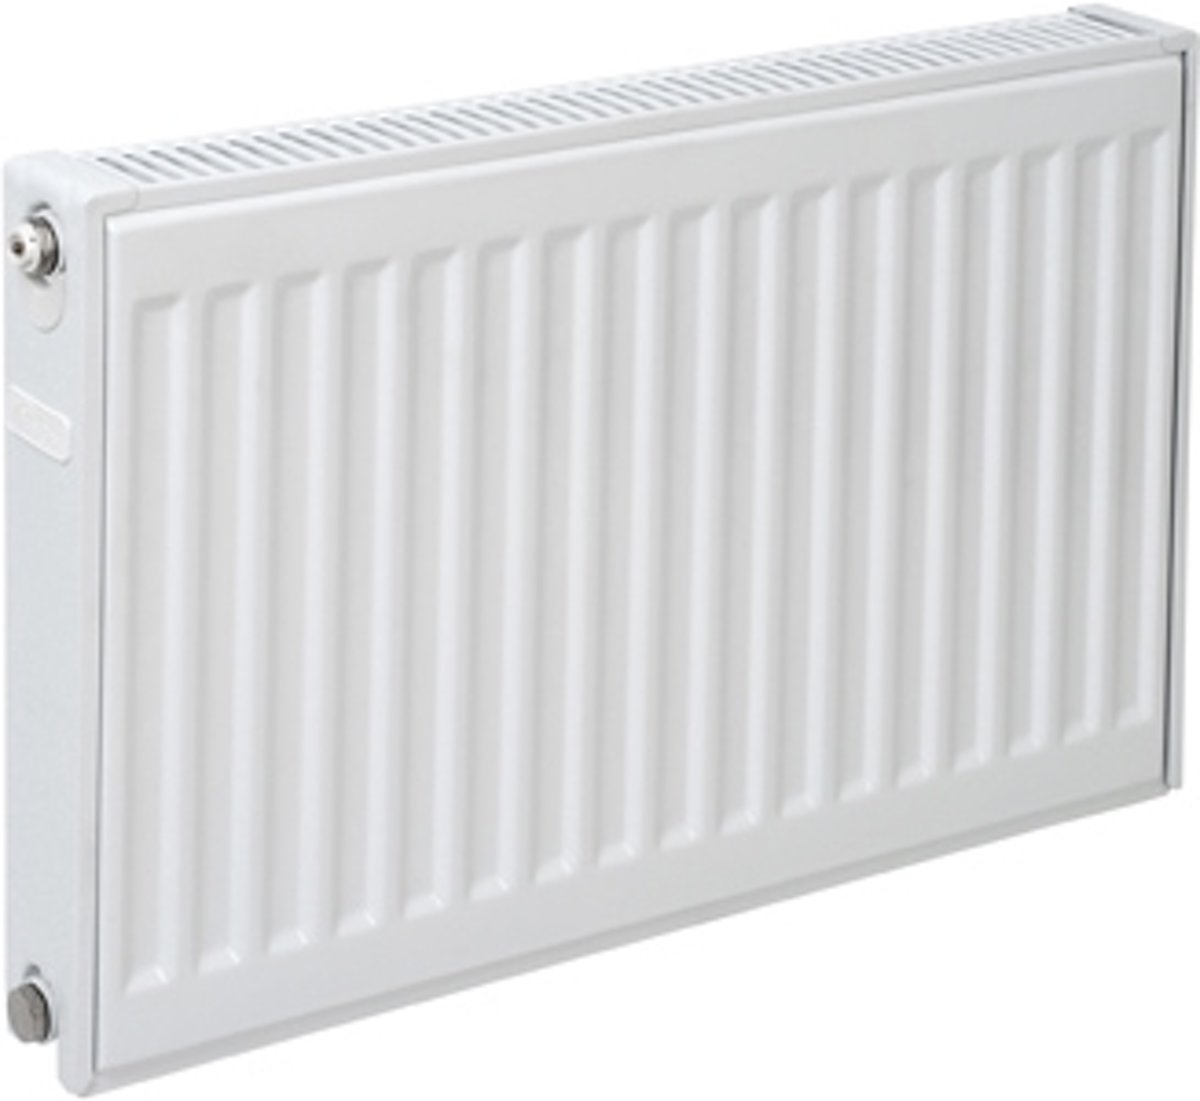 Plieger paneelradiator compact type 11 600x800mm 726W wit